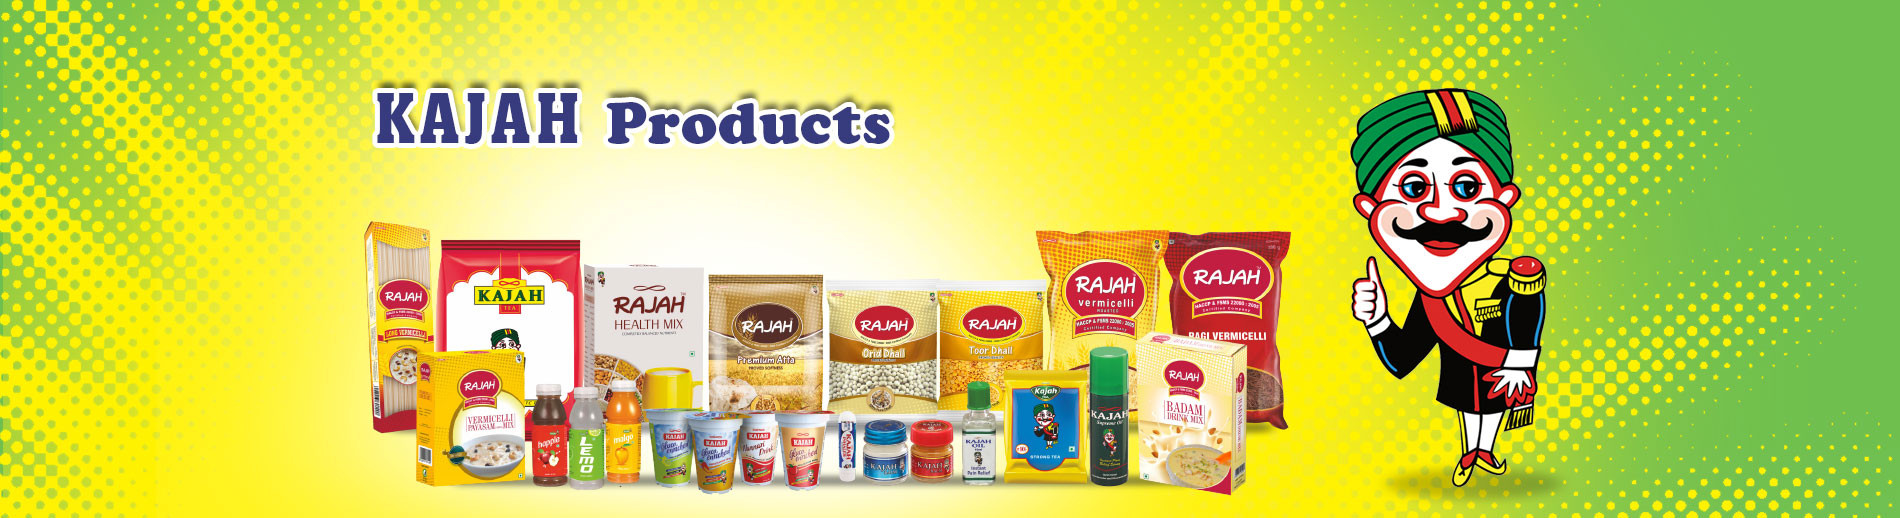 Kajah Products